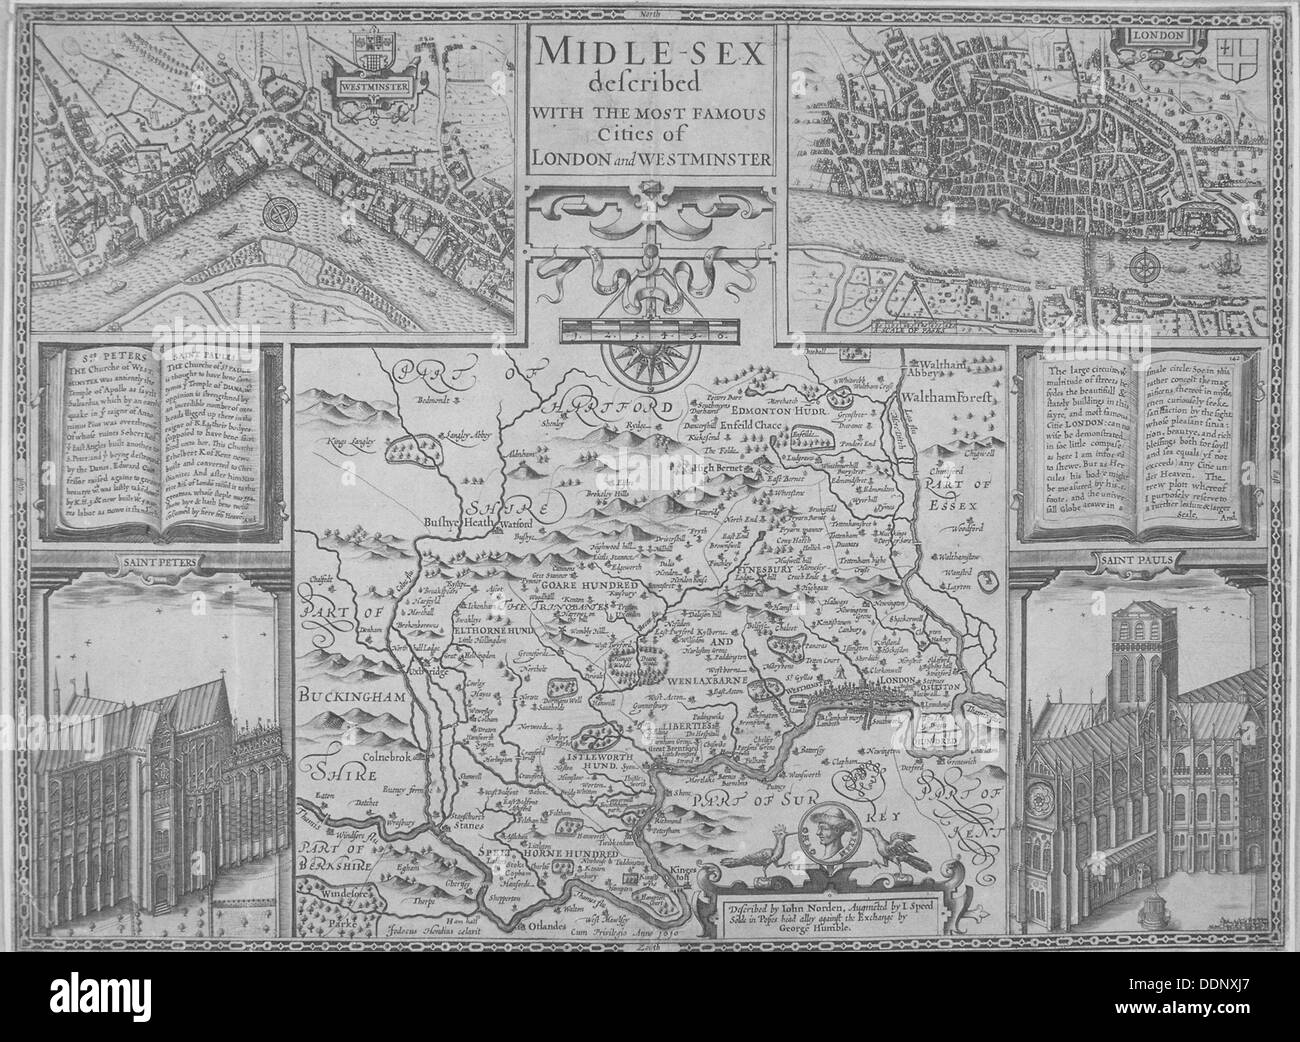 Maps of London, 1610. Artist: Anon - Stock Image